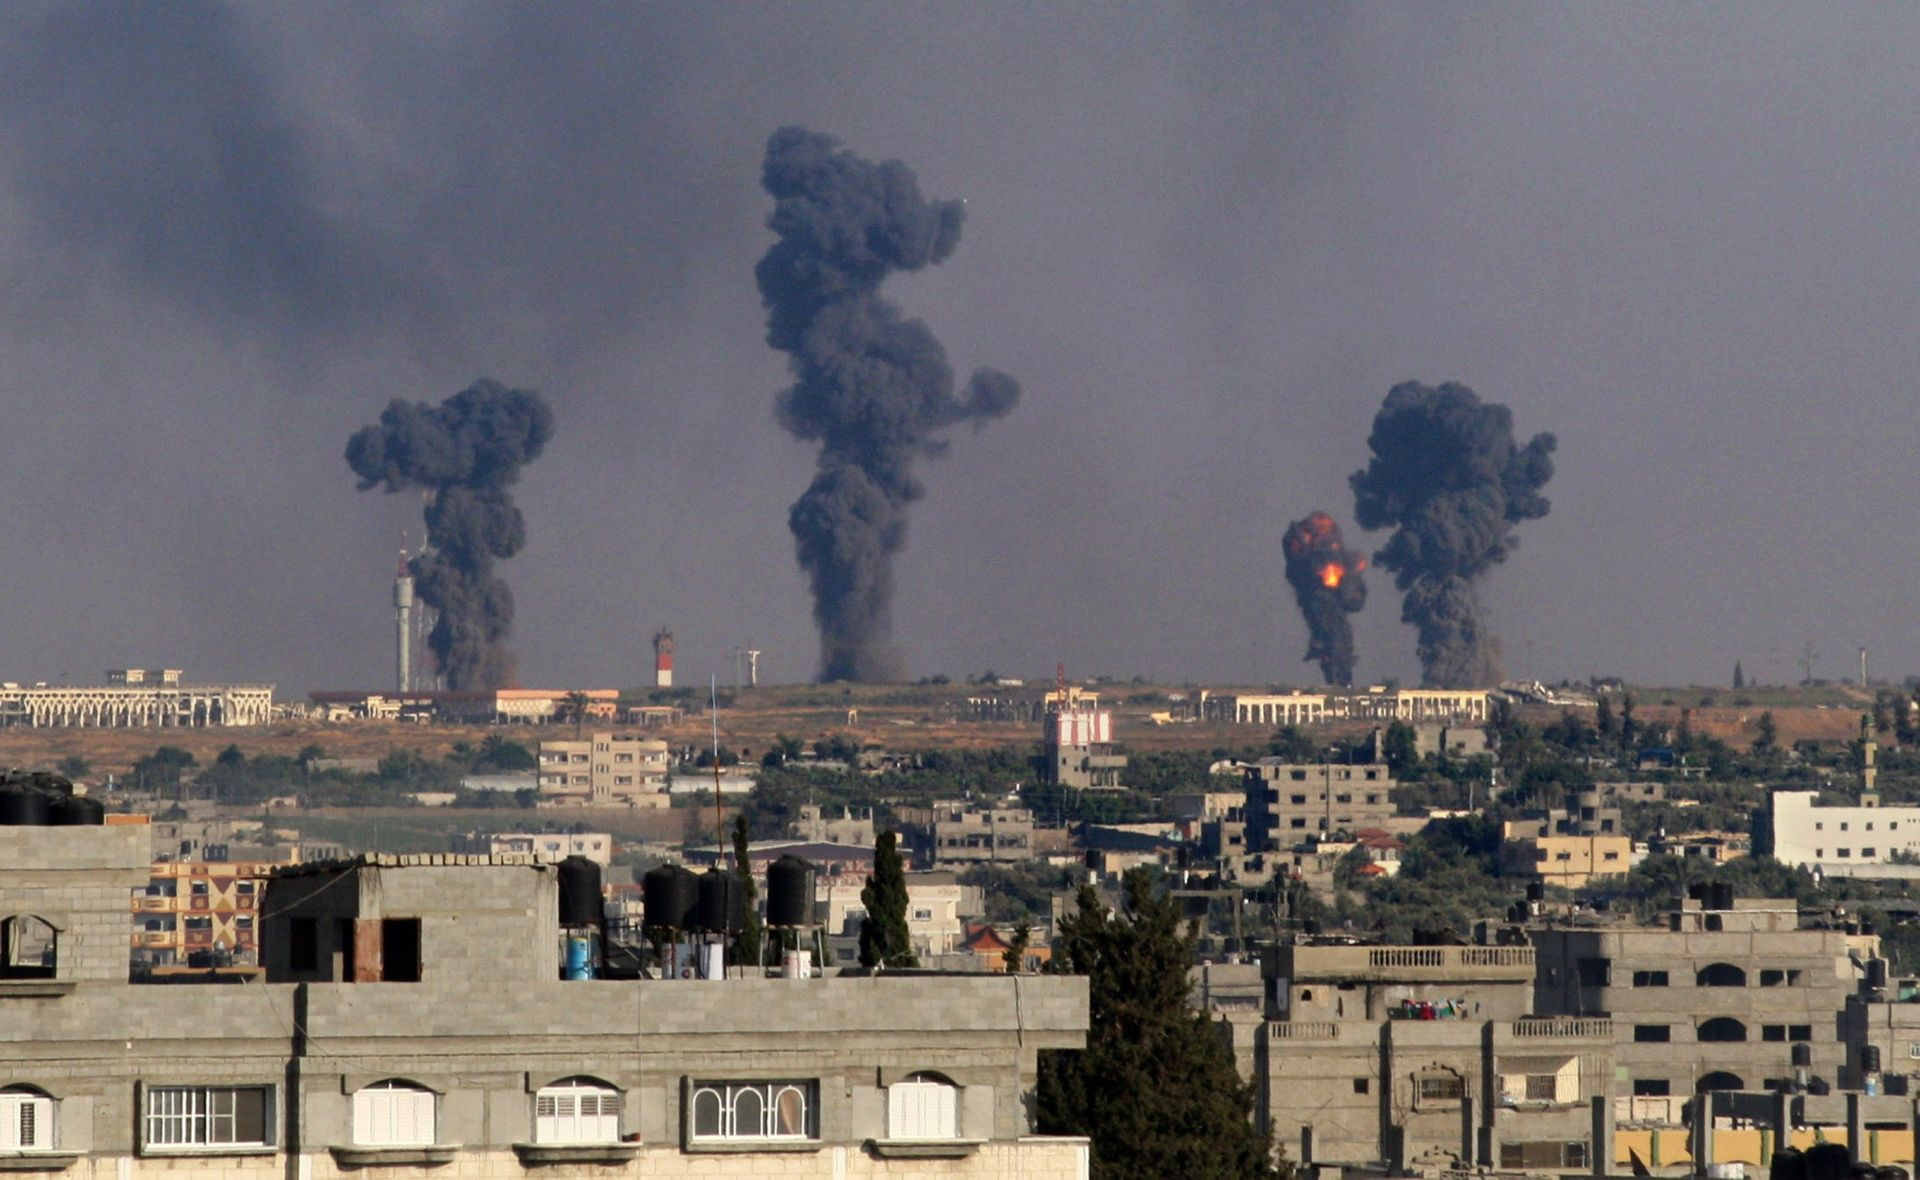 http://www.haaretz.co.il/st/inter/Heng/news/images/gaza.jpg